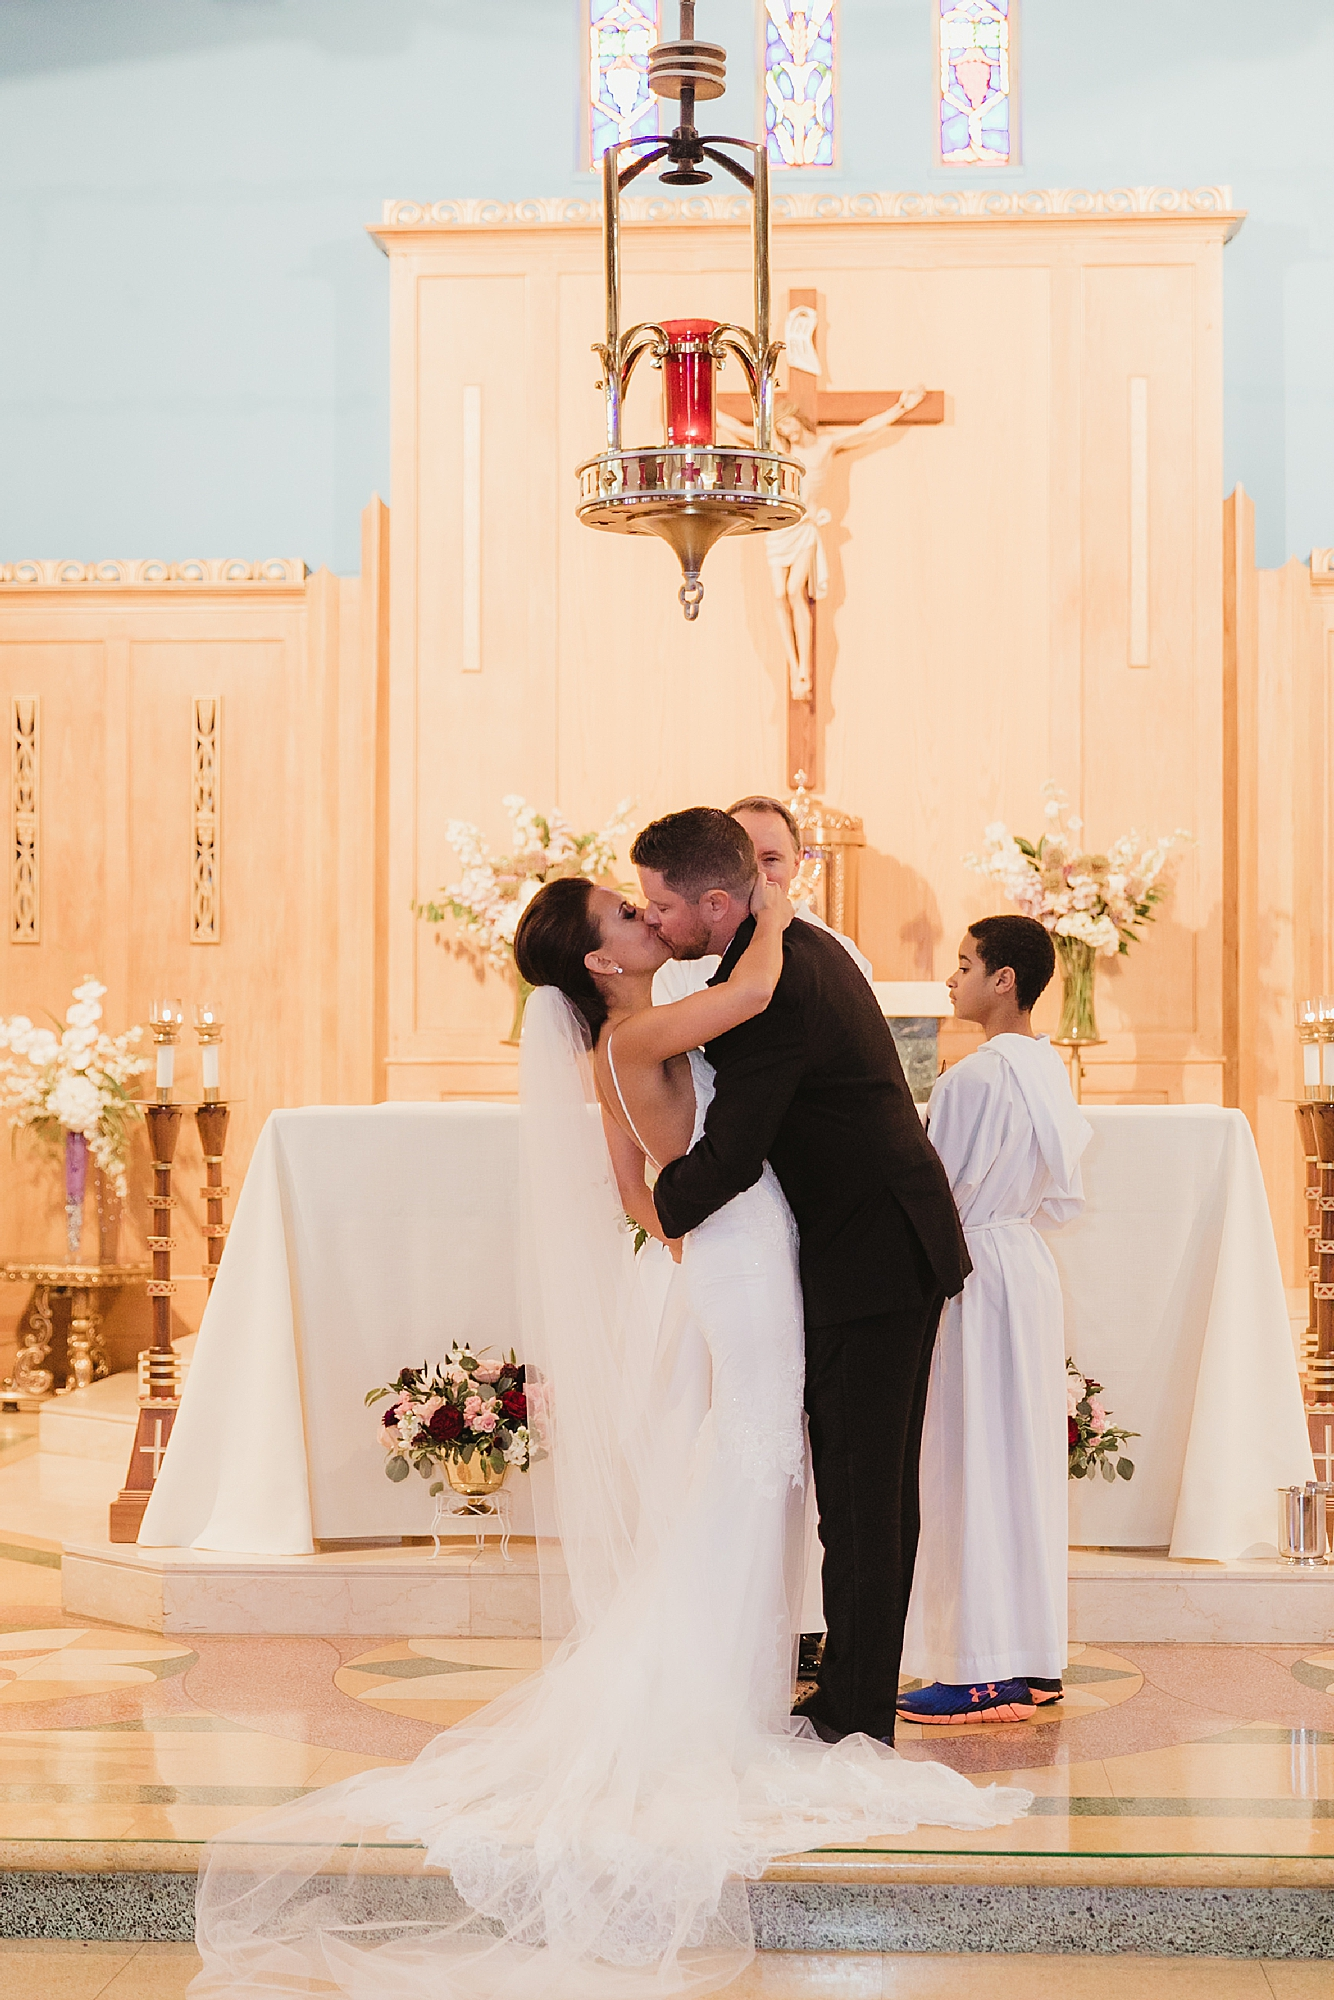 Candid and Stylish South Jersey Wedding Photography by Magdalena Studios 0026